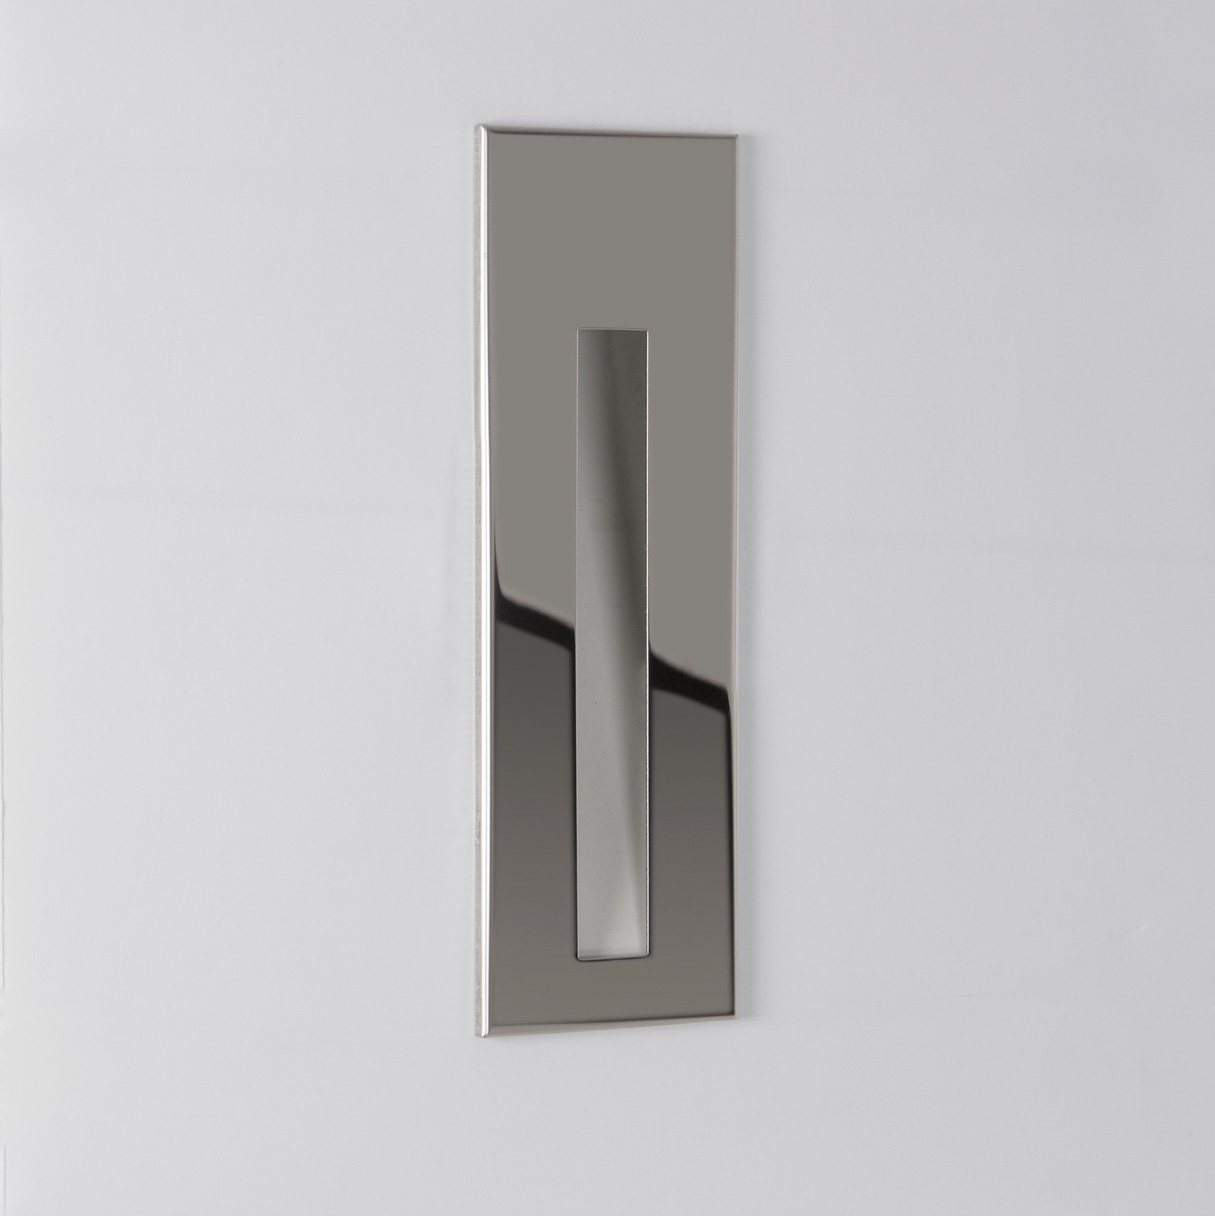 Astro Borgo 55 Bathroom Recessed 3w Led Low Level Wall Light Stainless Steel 5038856070897 Ebay